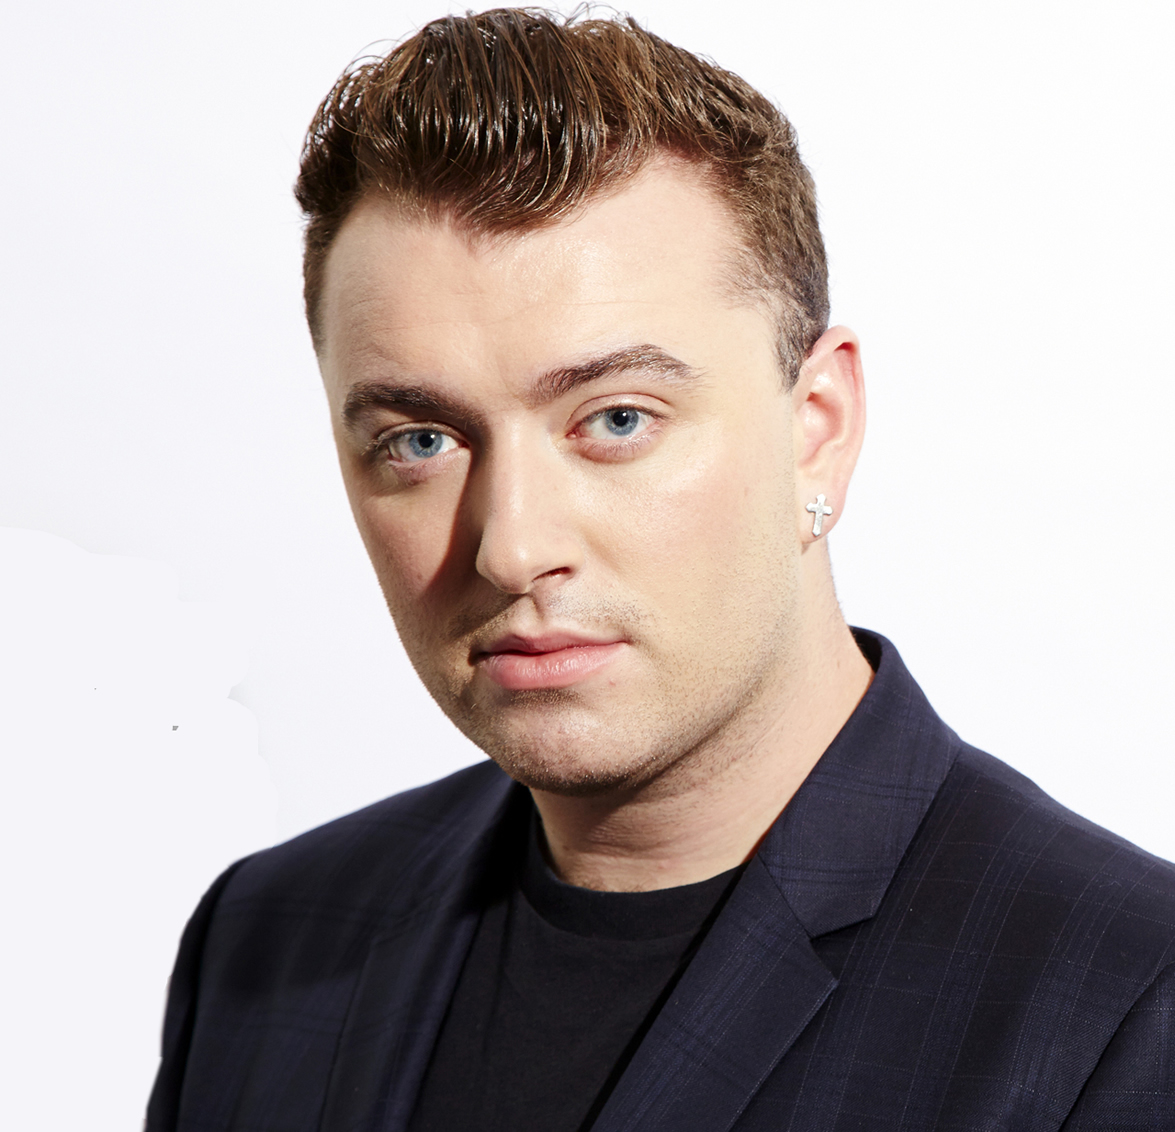 Singer Sam Smith - age: 28